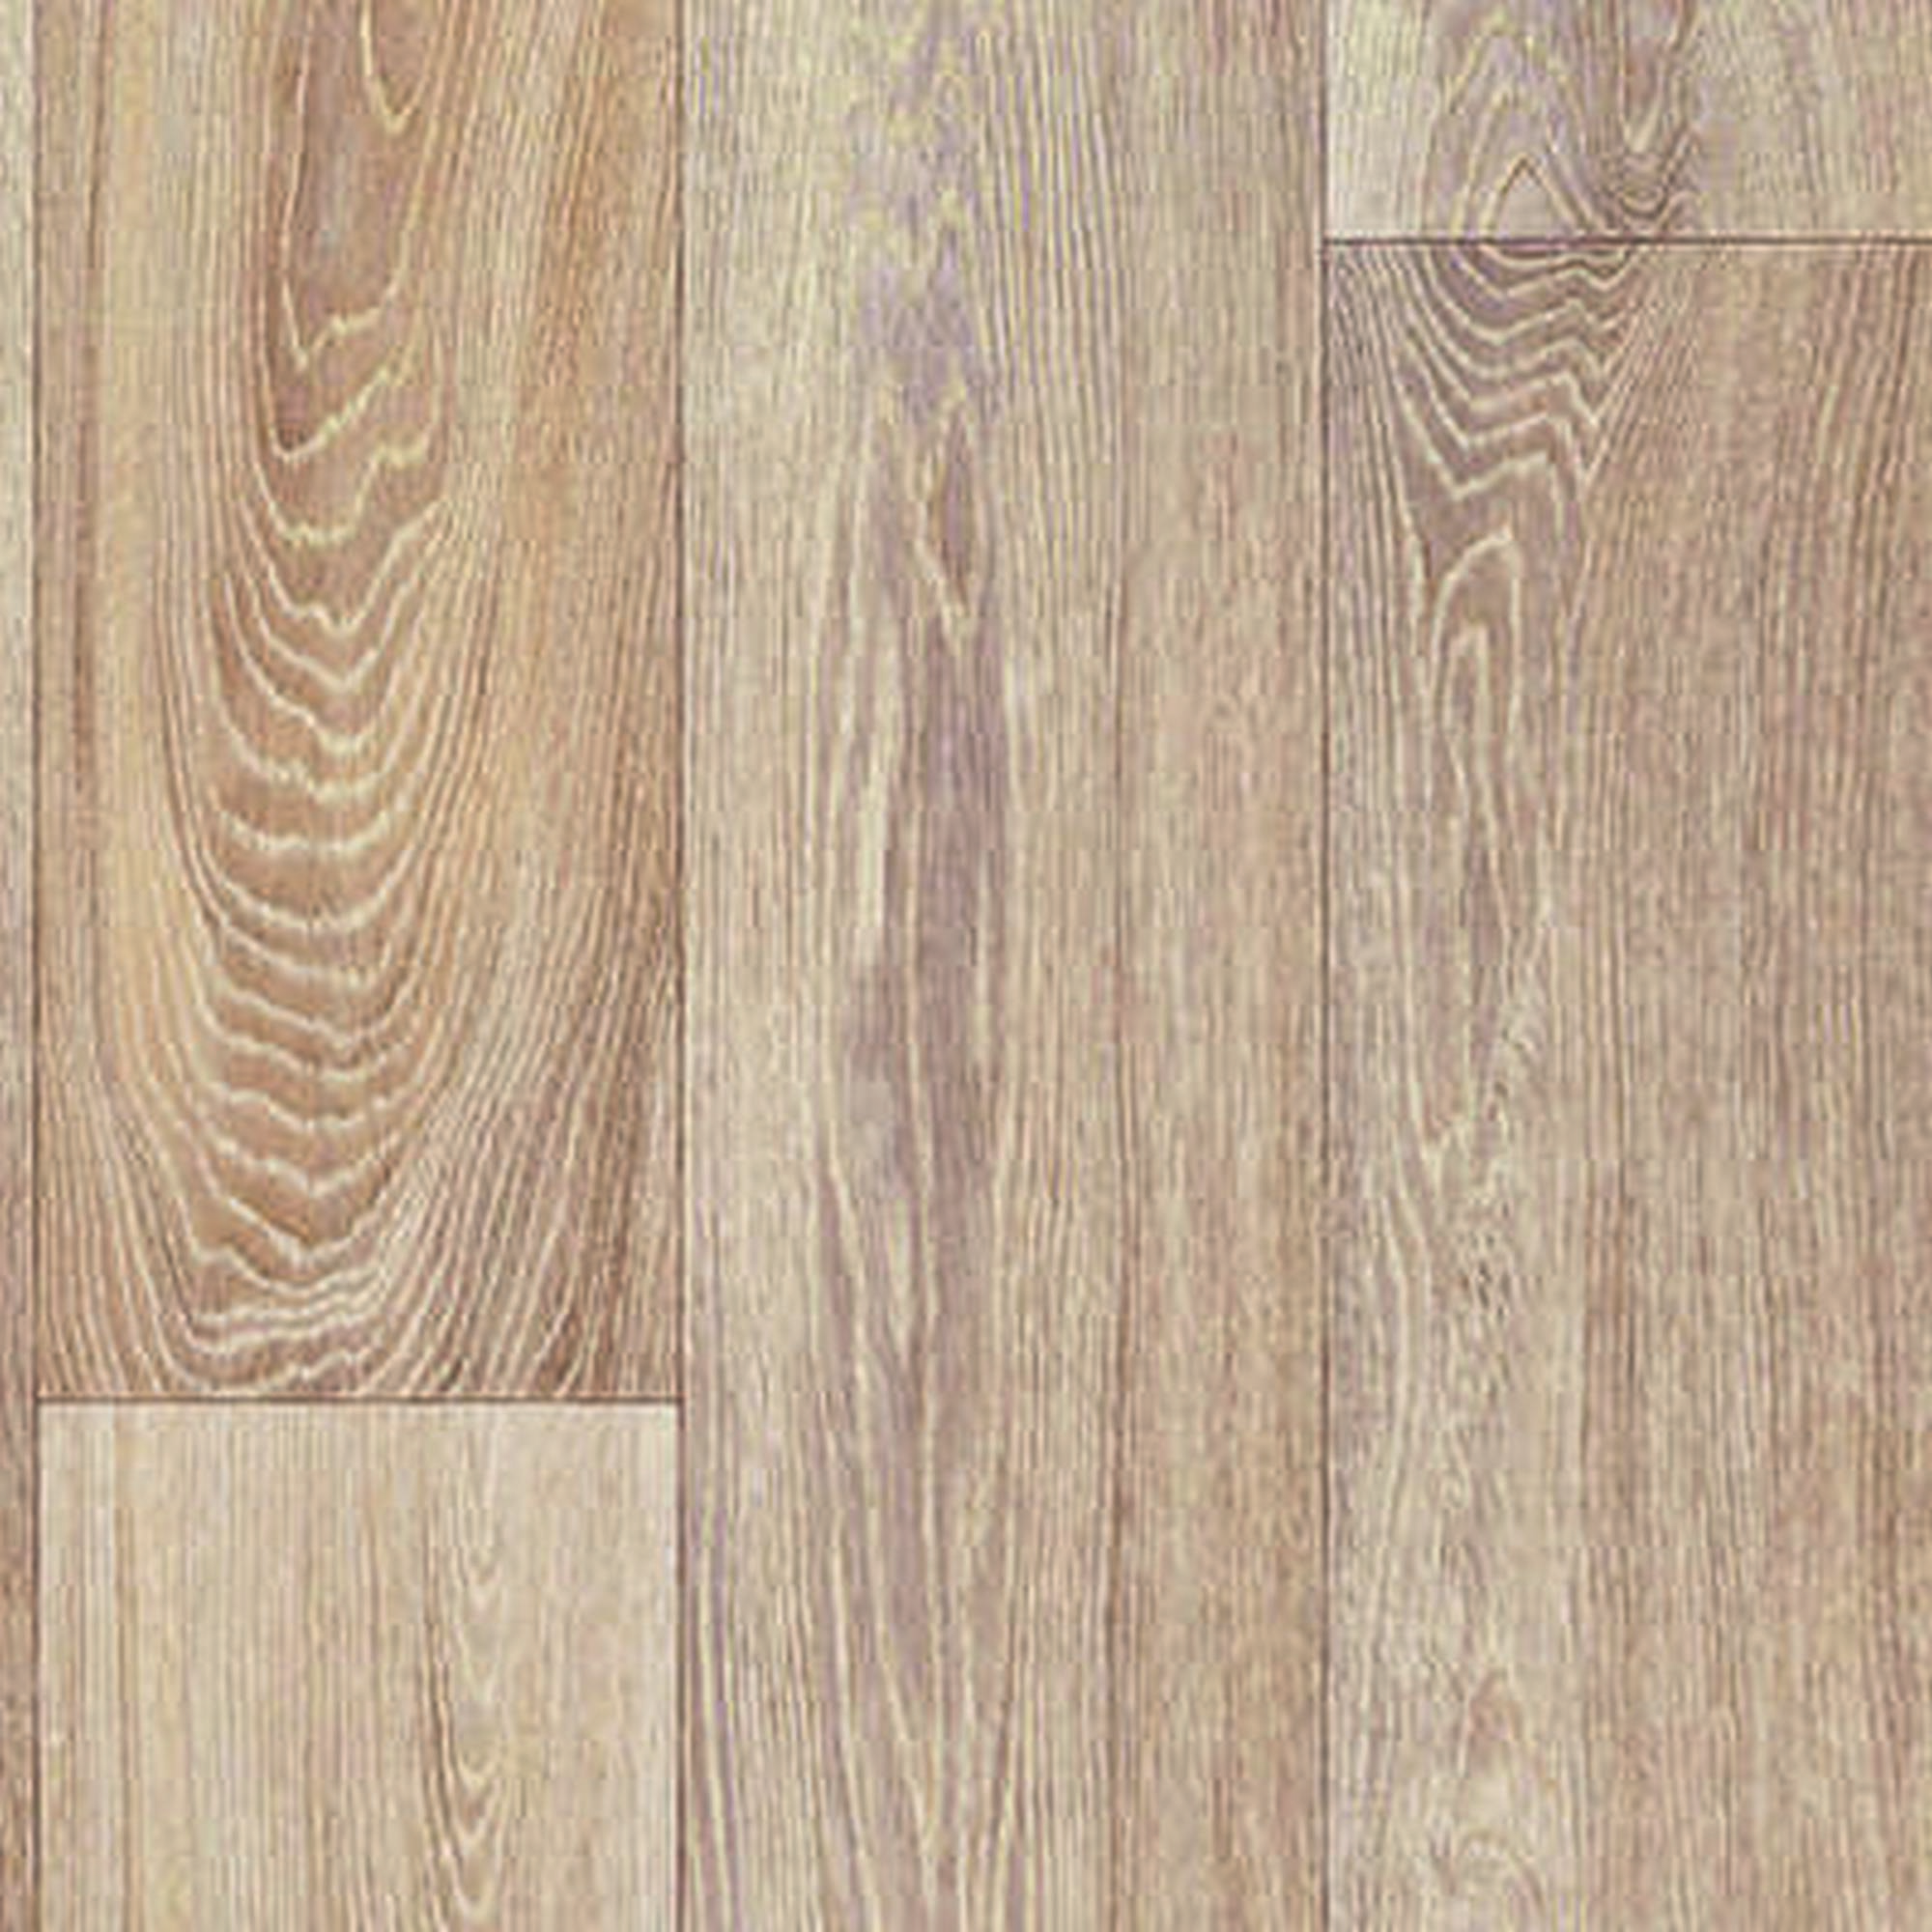 Линолеум (в нарезку) Ideal Record PURE OAK 7182  4,50\0,35 мм